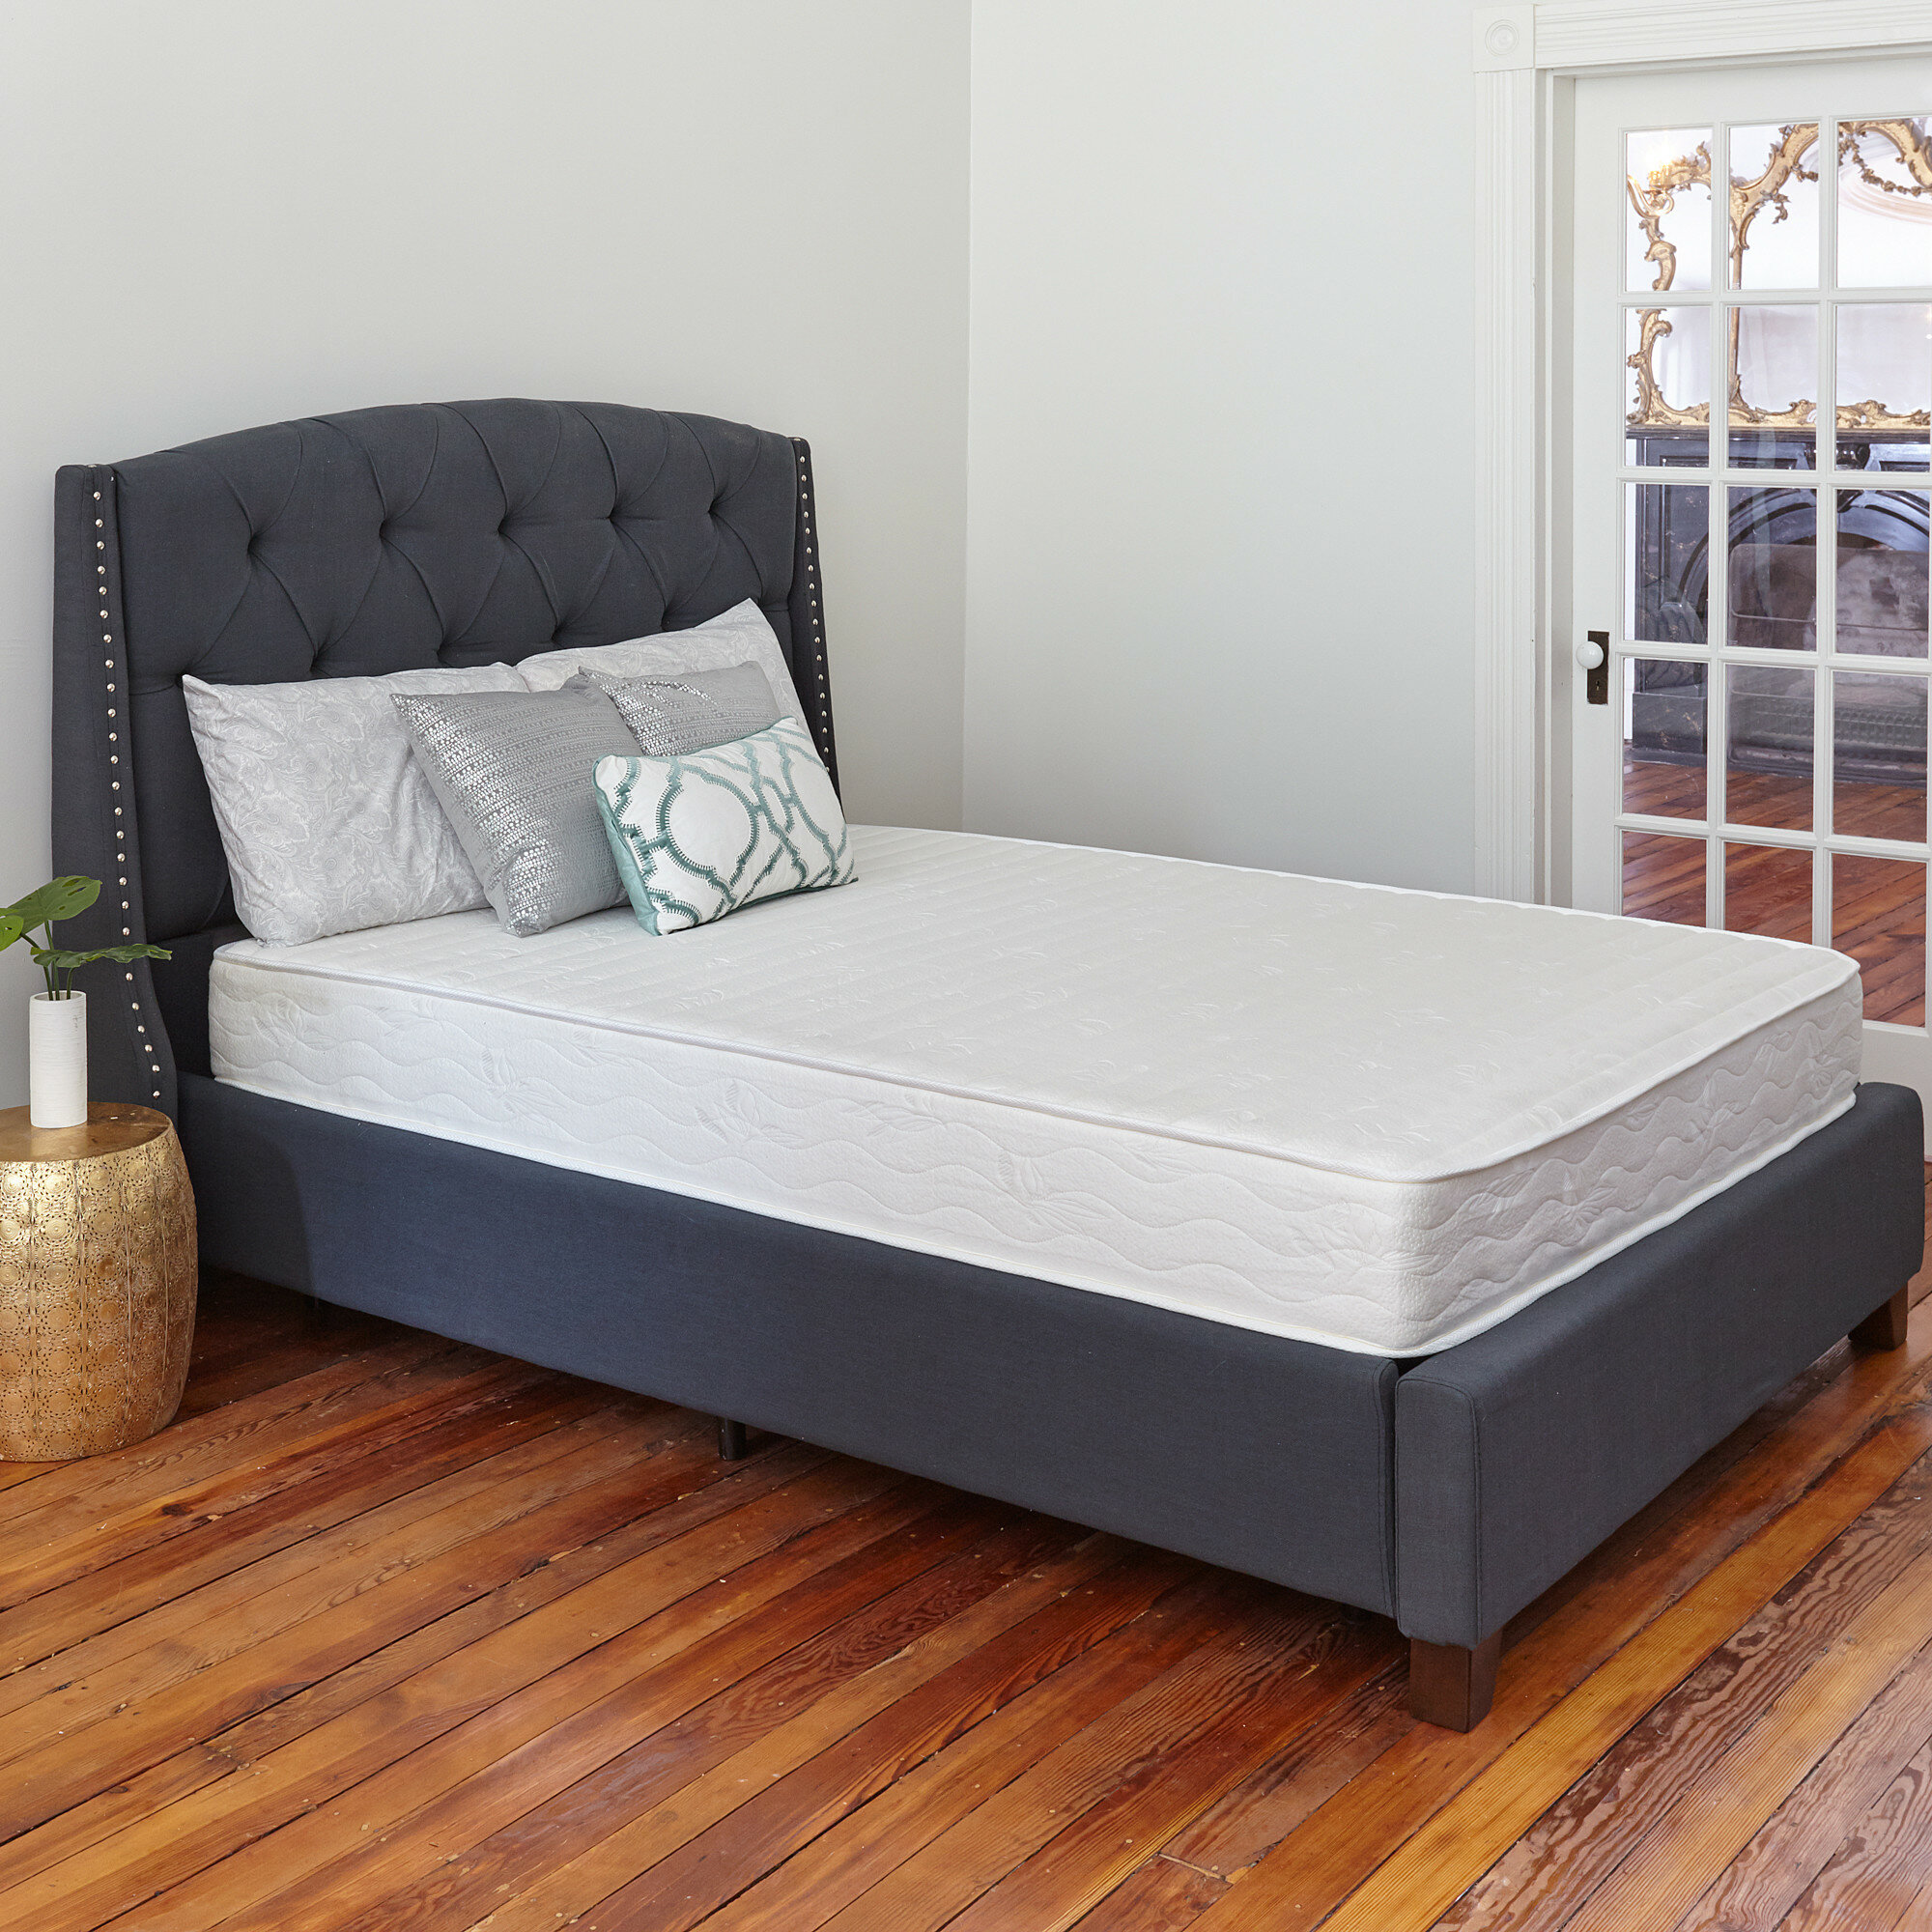 wayfair ca reviews mattress sleep hybrid firm mattresses pdp